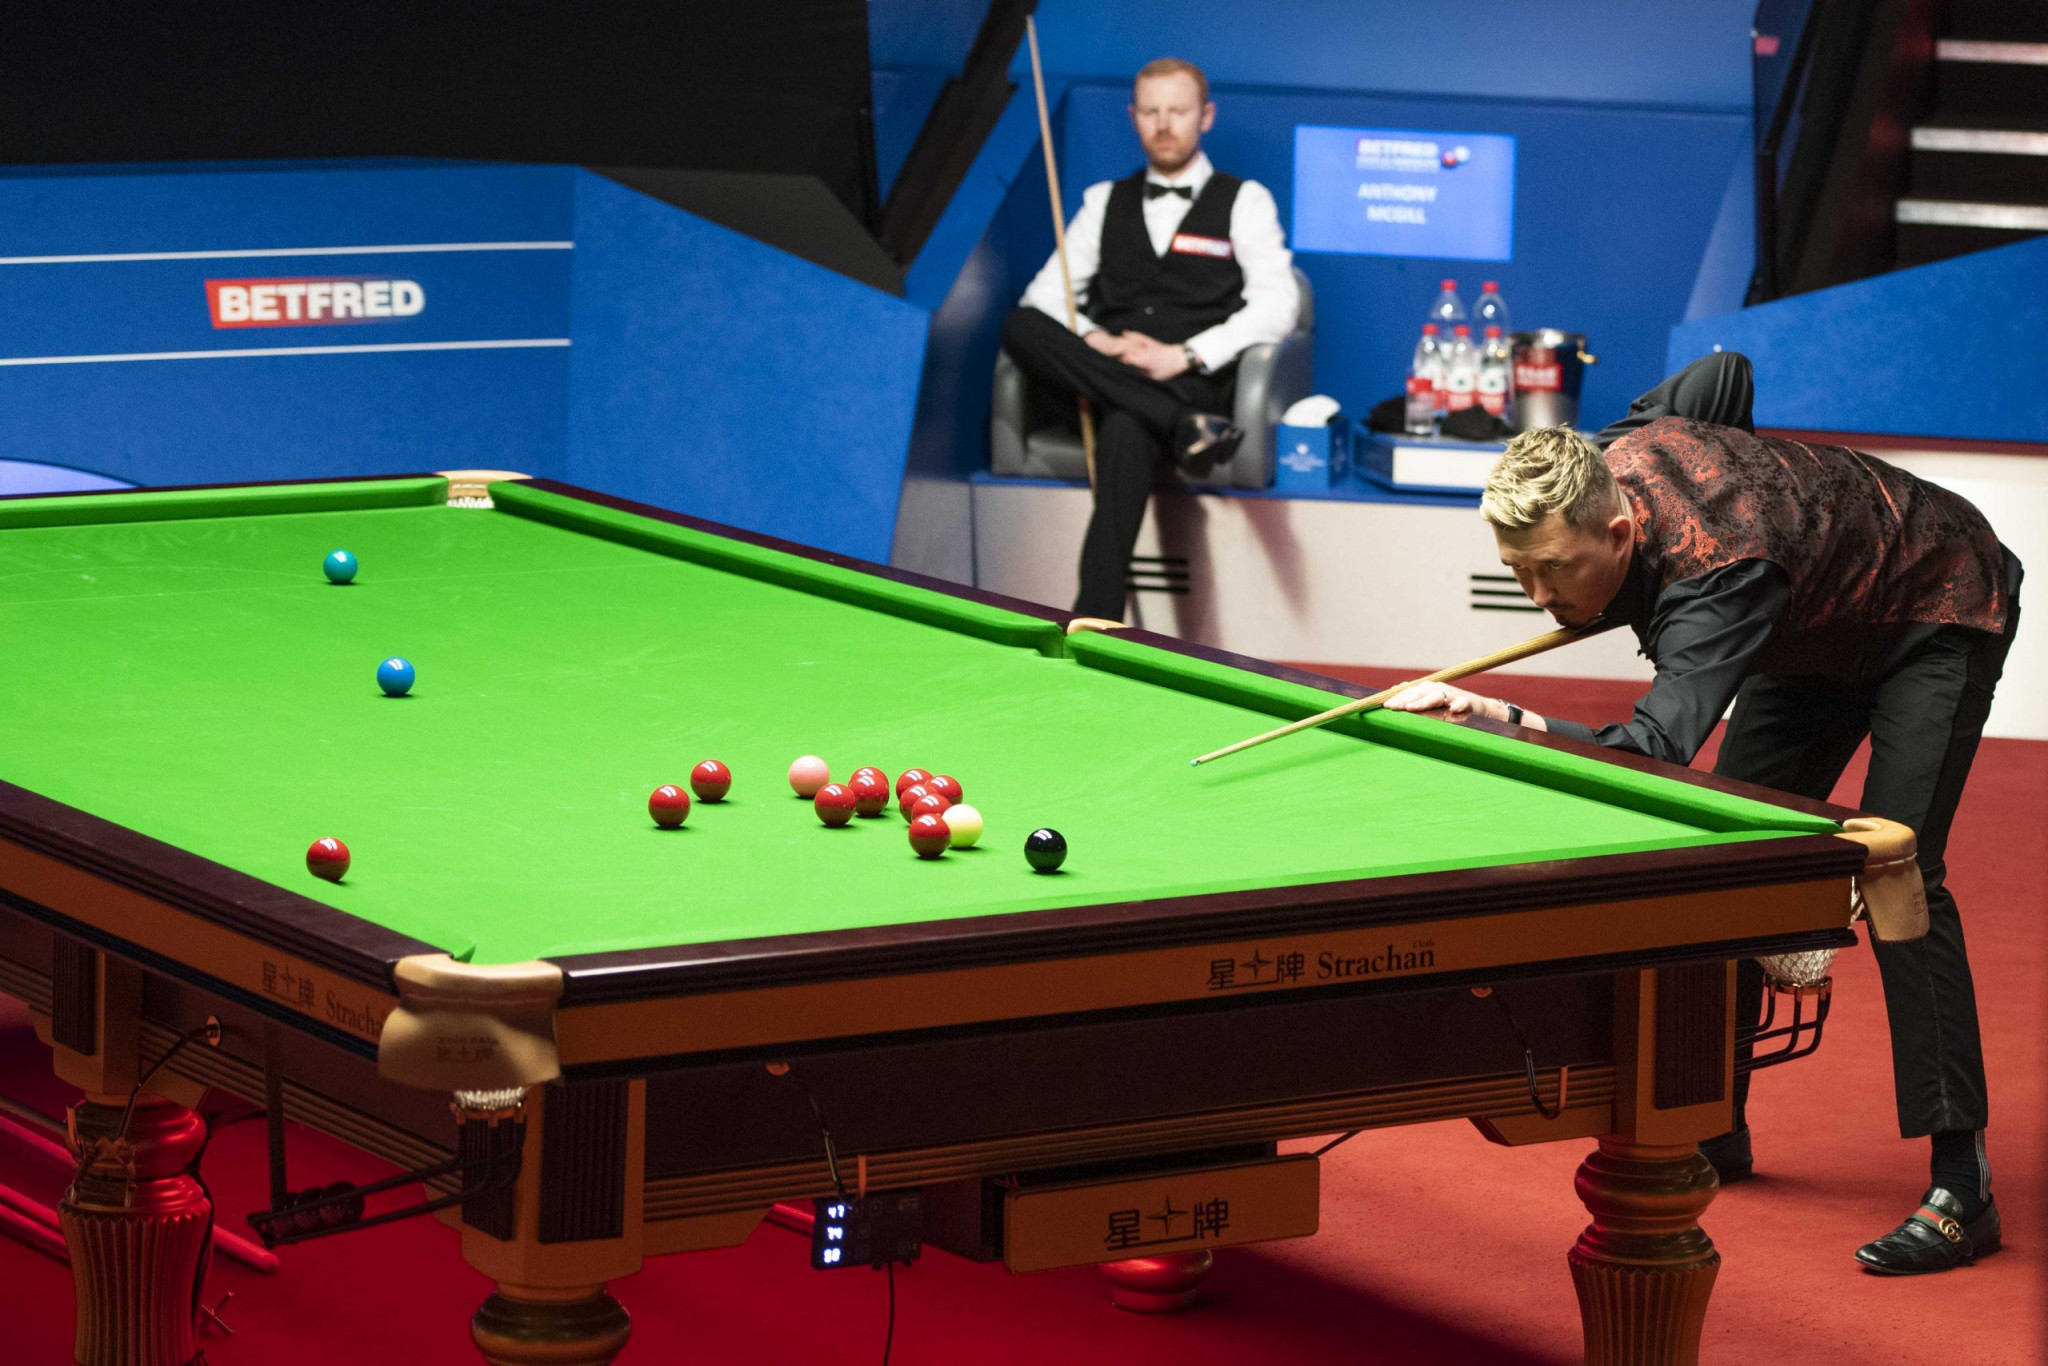 O'Sullivan recovers from brink of defeat to reach seventh World Snooker Championship final